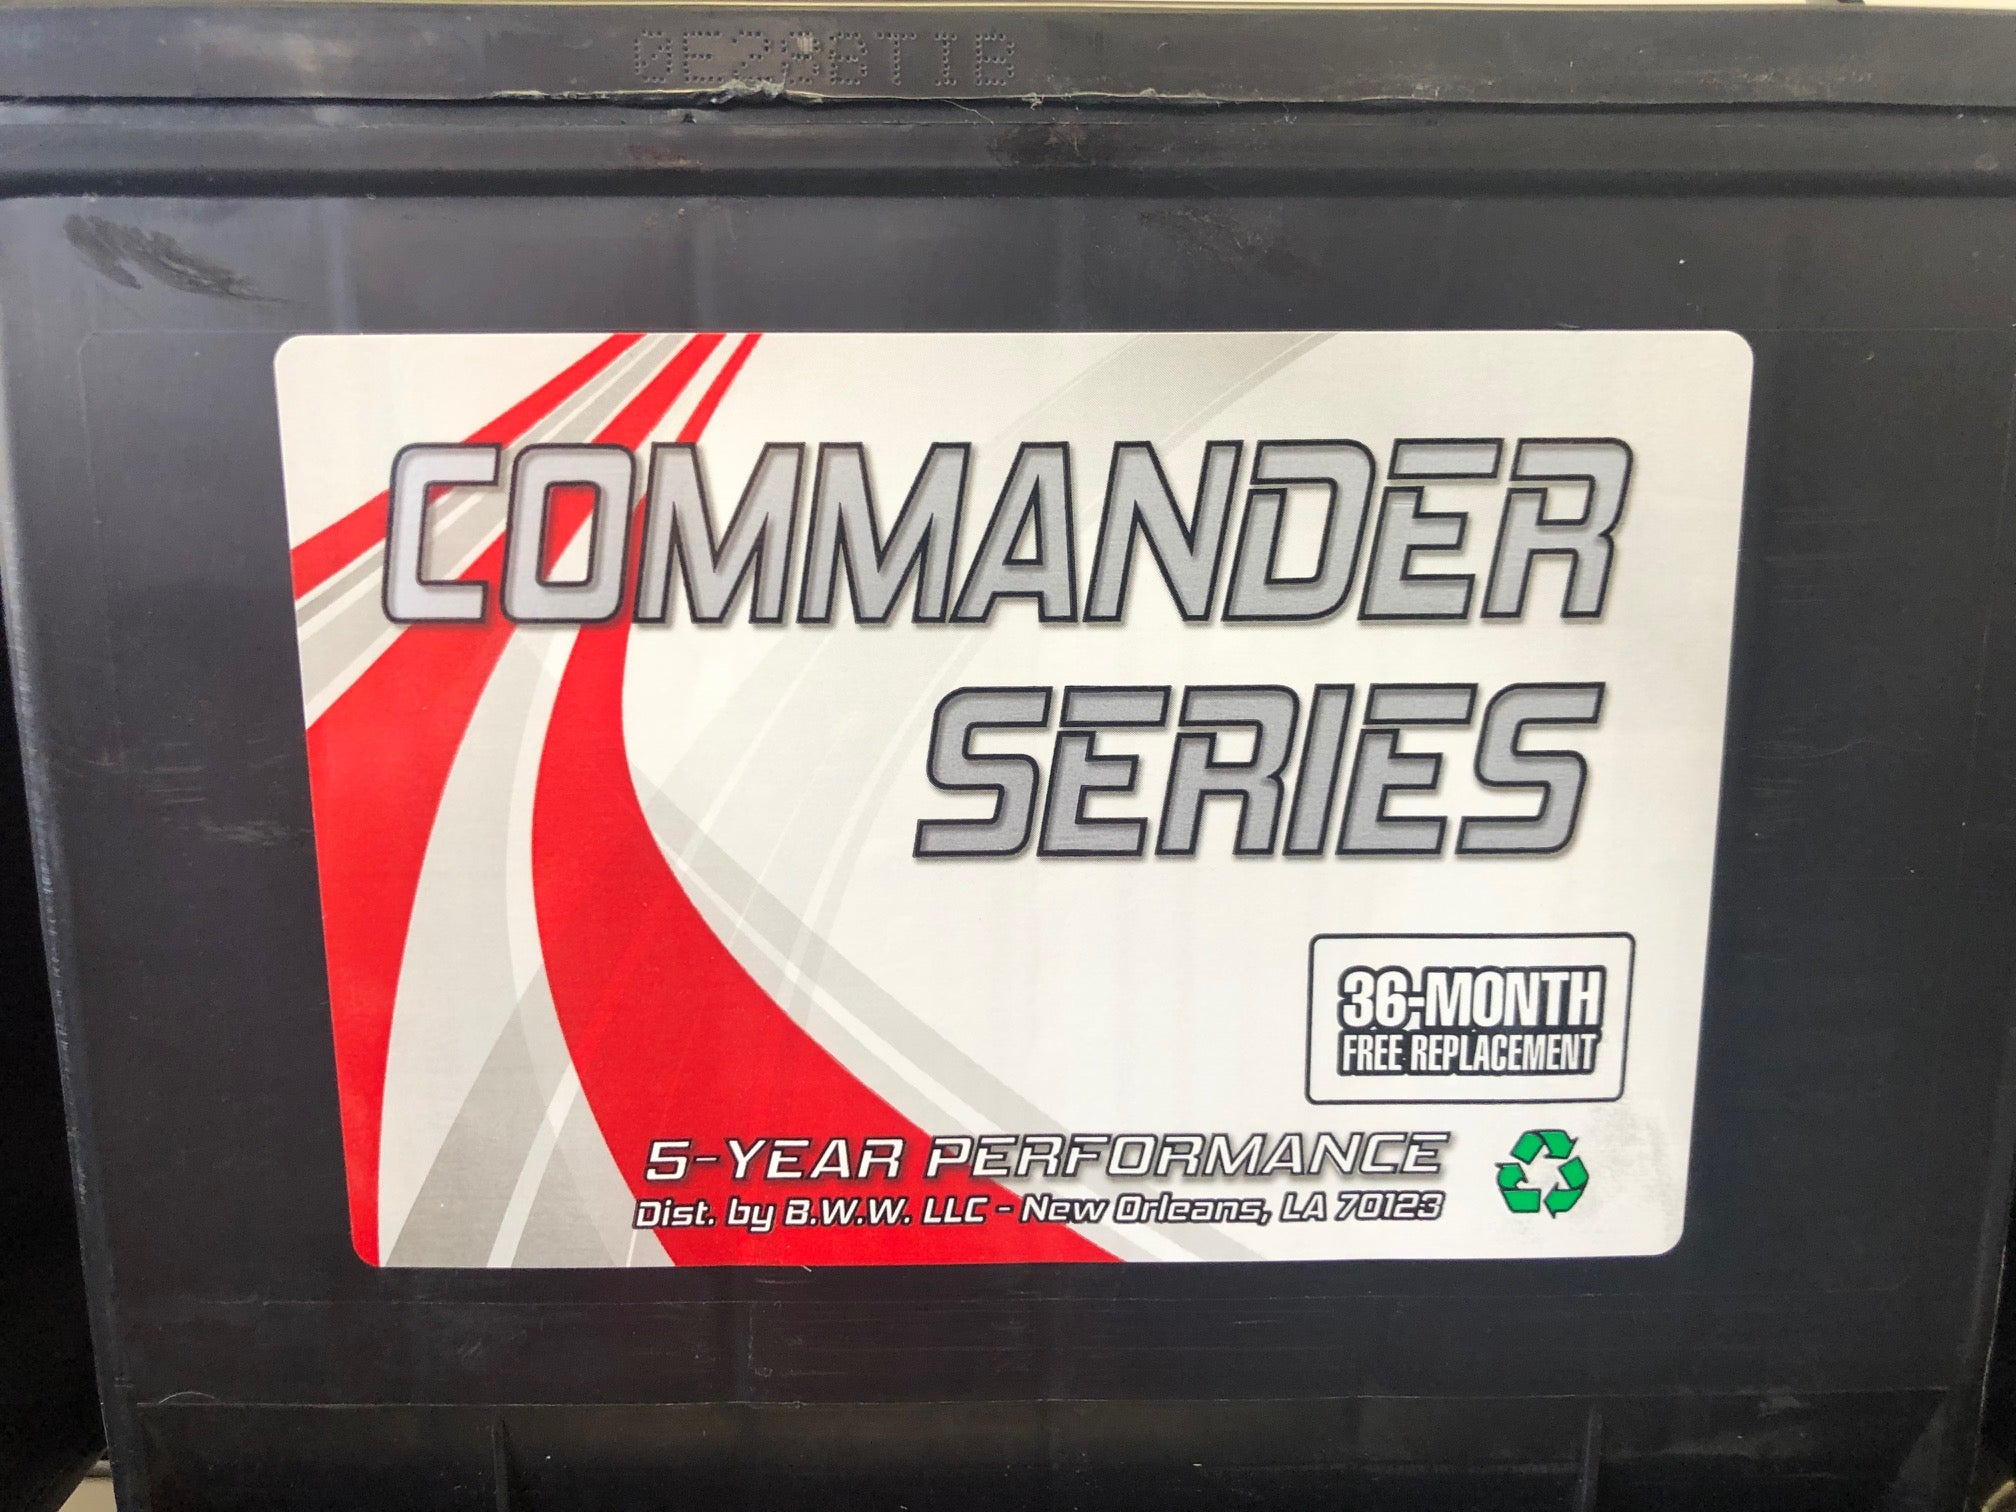 Commander Series Marine Group Size 24 - 1000 MCA